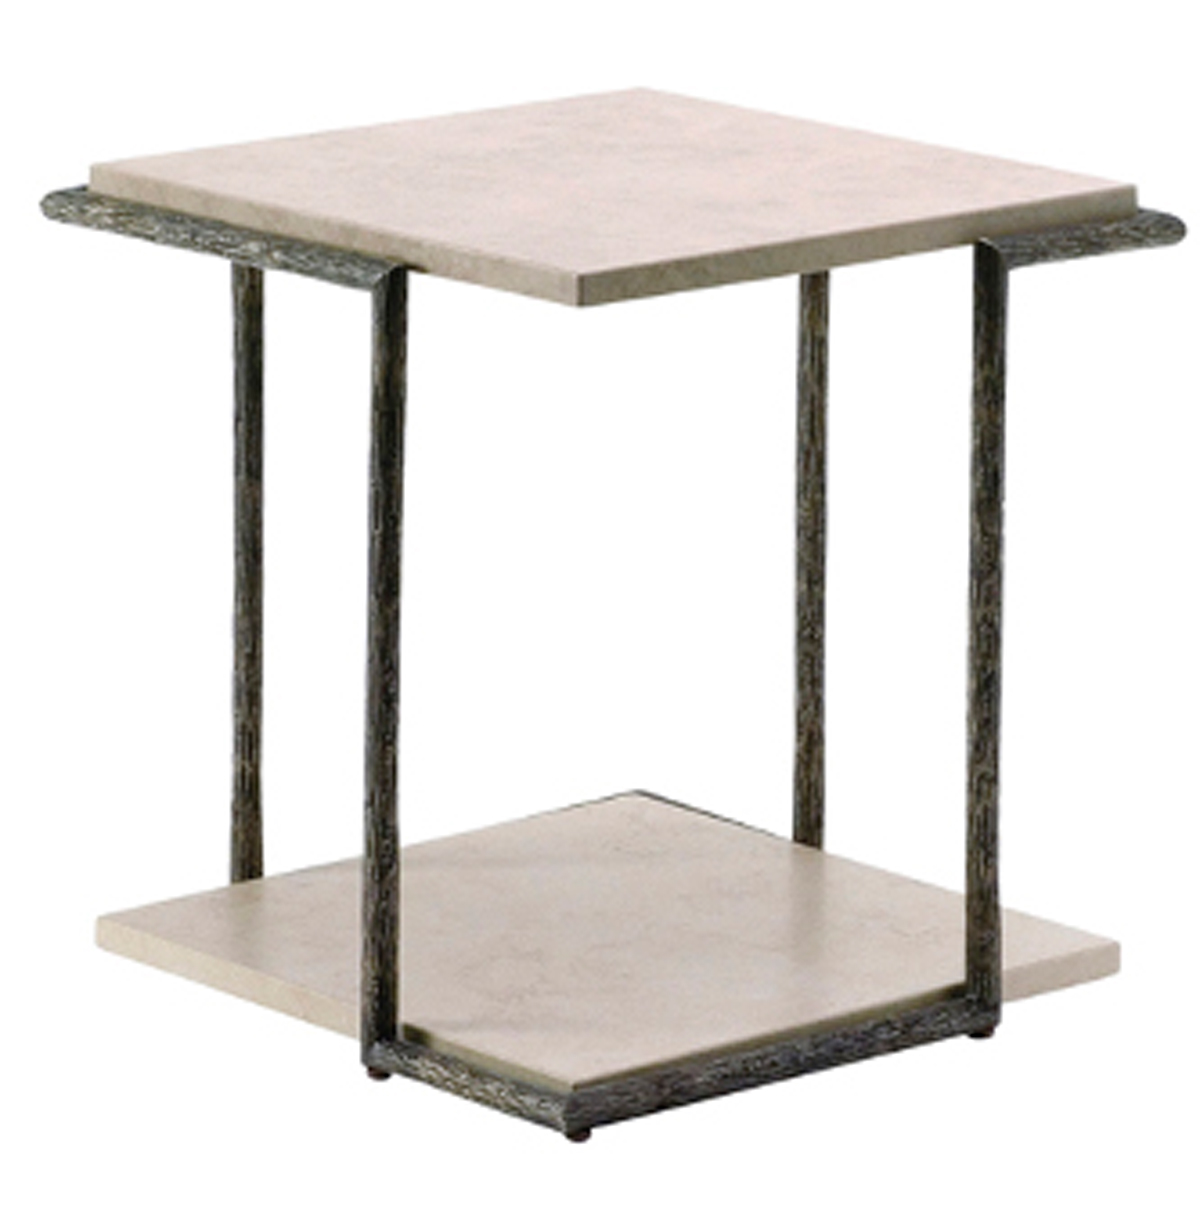 THOMAS PHEASANT TEXTURED BRASS SIDE TABLE No. TB-41S